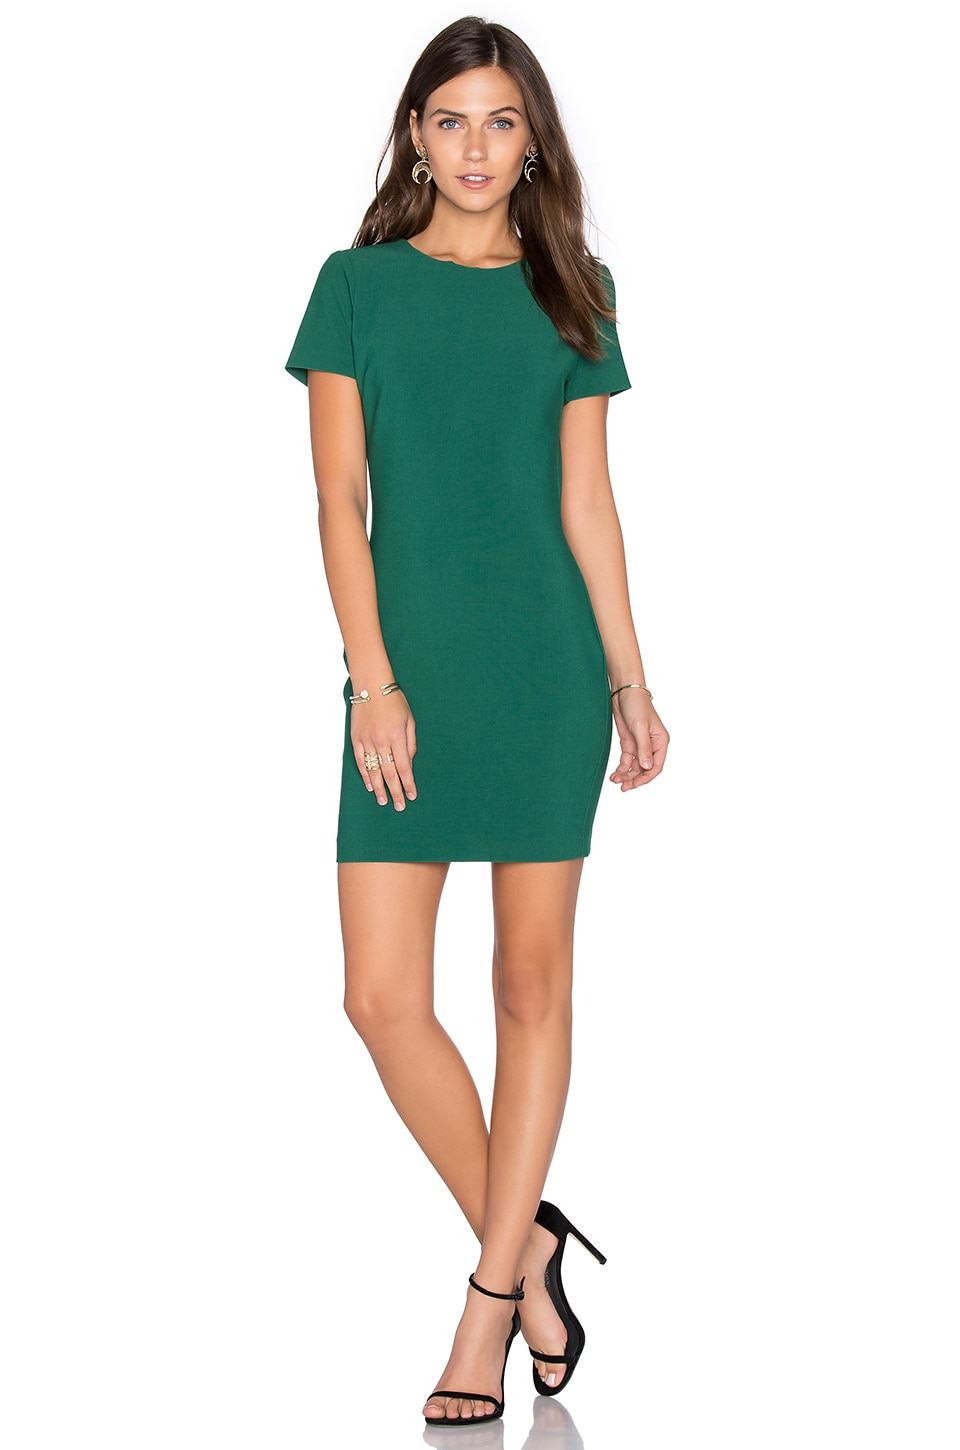 Manhattan Dress by LIKELY